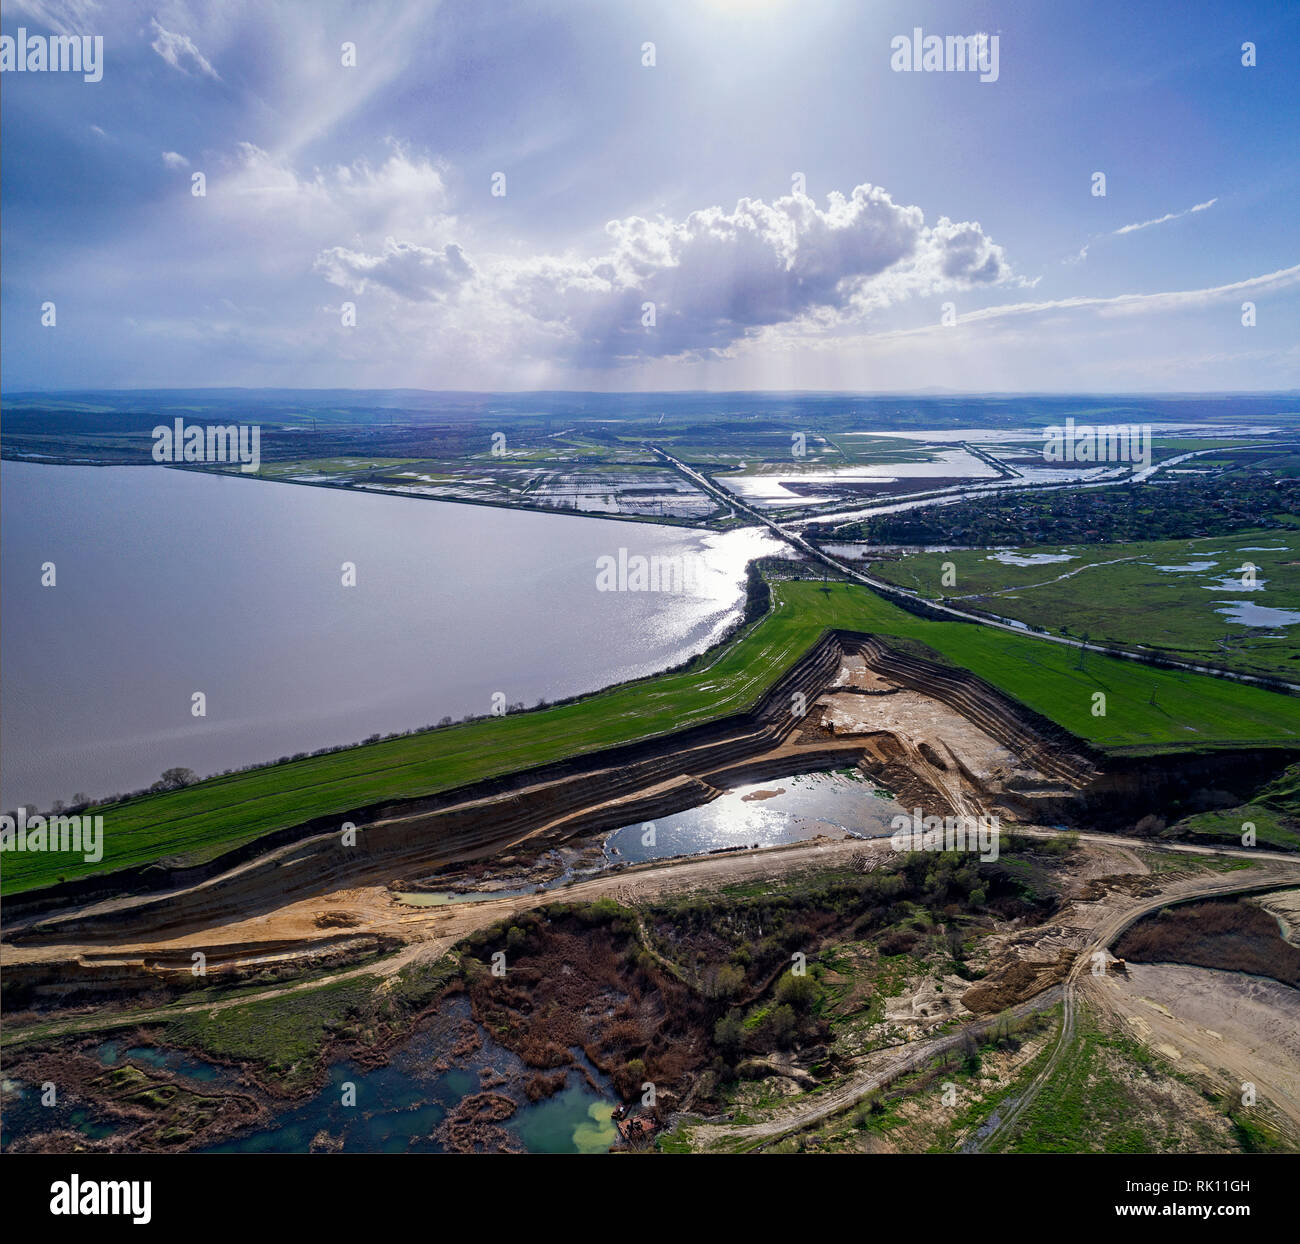 Panoramic view of sand quarry, mining of yellow construction sand, pumping sand with help of powerful pumps, post-apocalyptic landscape - Stock Image